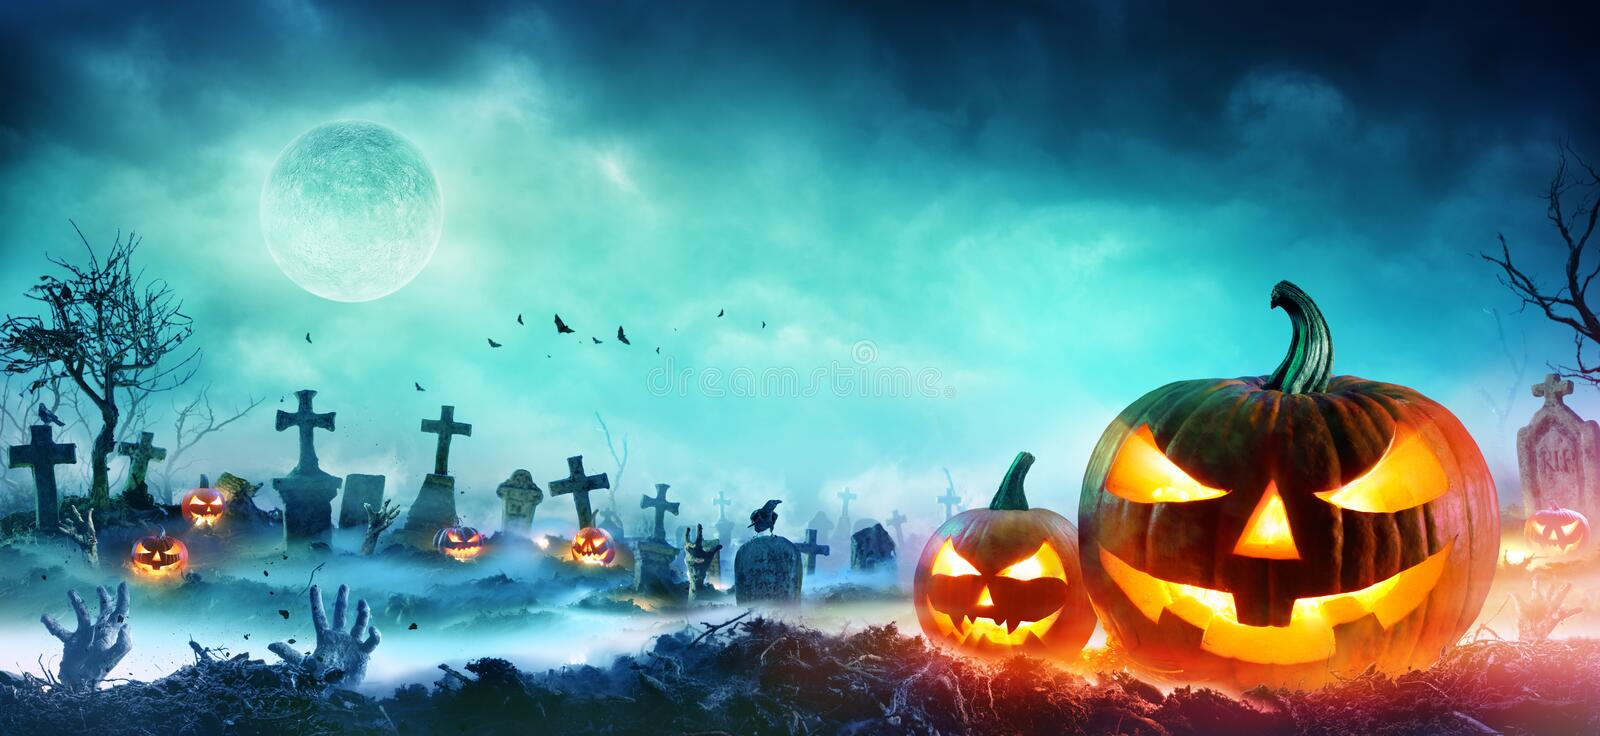 Jack O Lanterns And Zombie Hands Rising Out Of A Graveyard royalty free stock photography